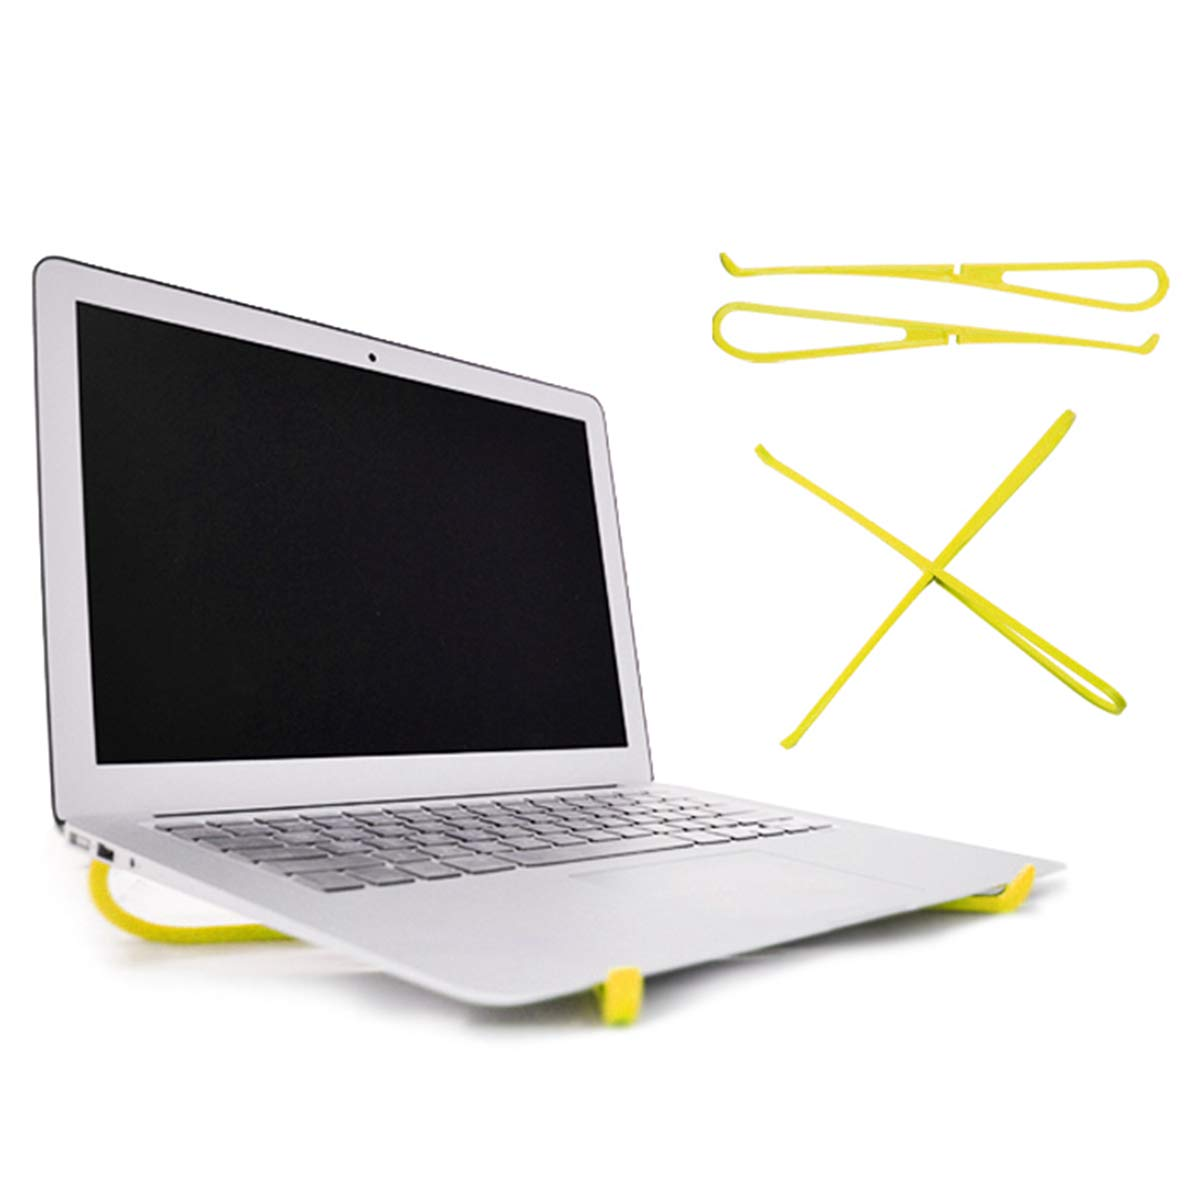 Laptop Stand, Shengchang Laptop Portable Cooling Rack PC Monitor Riser Adjustable Desktop Holder Ergonomic Lightweight Compatible for Apple MacBook Pro/Air and Other 15-Inch Notebook (Yellow)